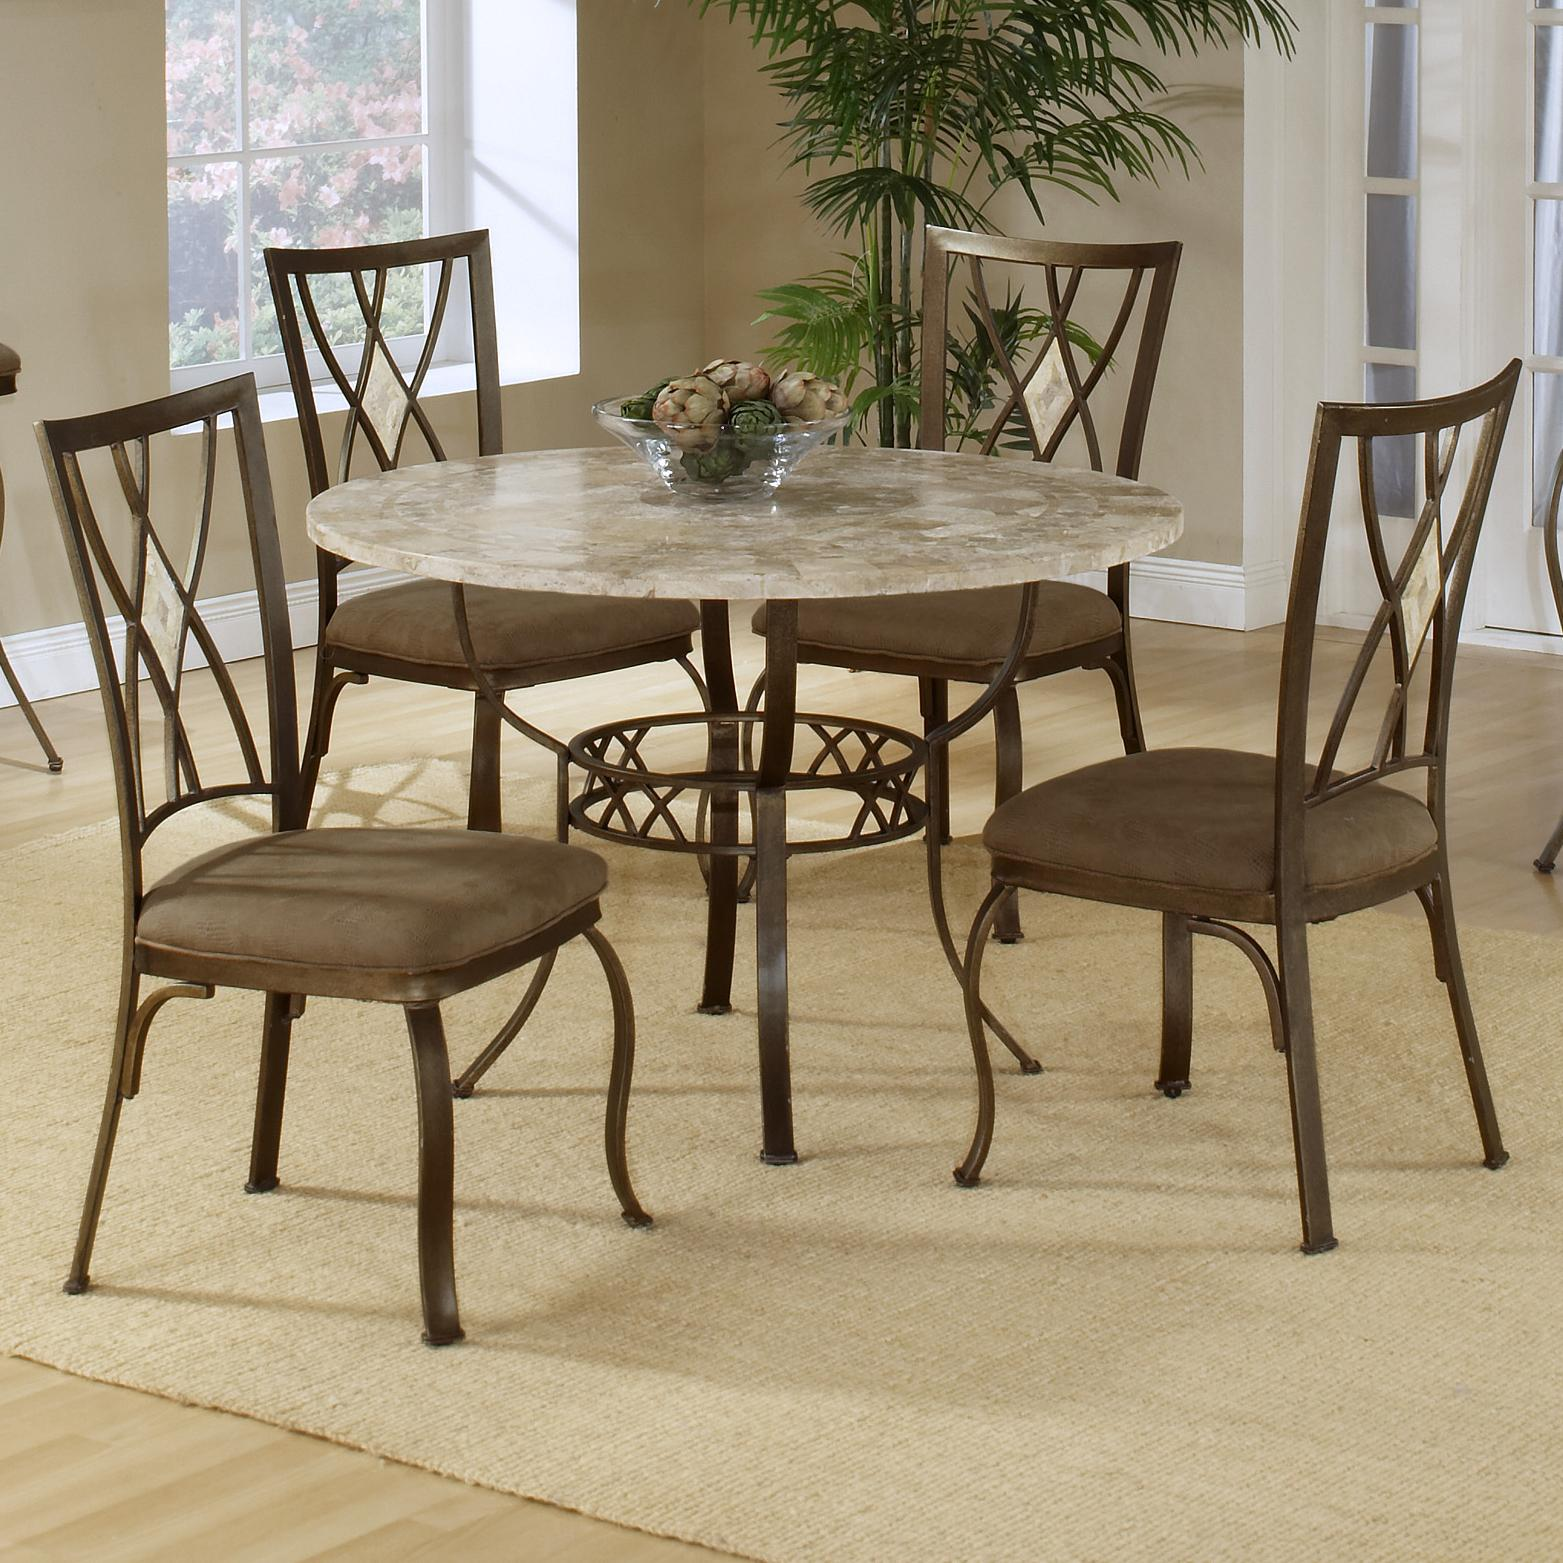 Hillsdale Brookside Five Piece Round Dining Set - Item Number: 4815DTRNBCDM